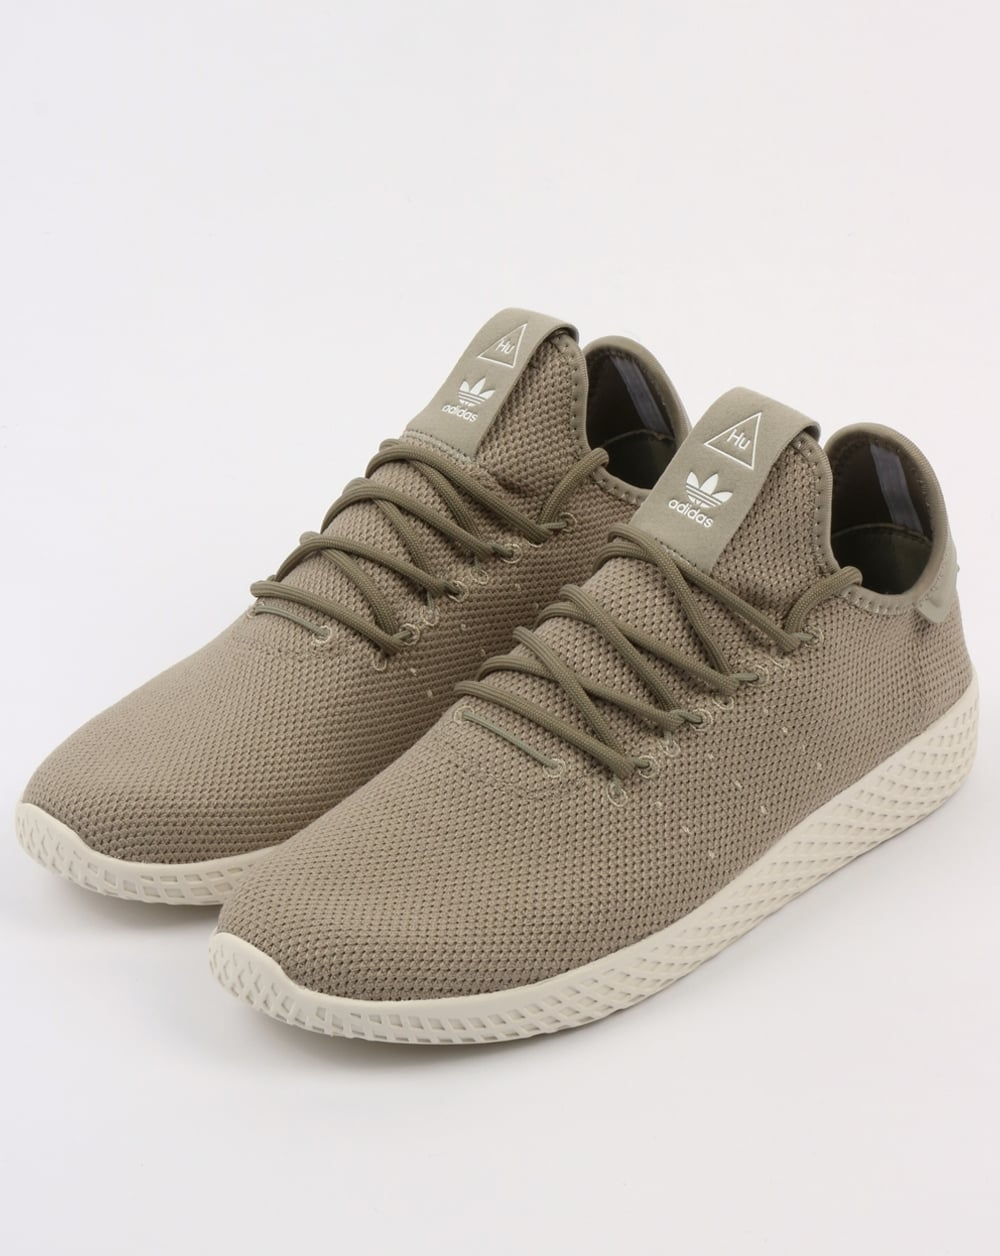 beb296174 adidas Trainers Adidas PW Tennis HU Trainers Tech Beige White